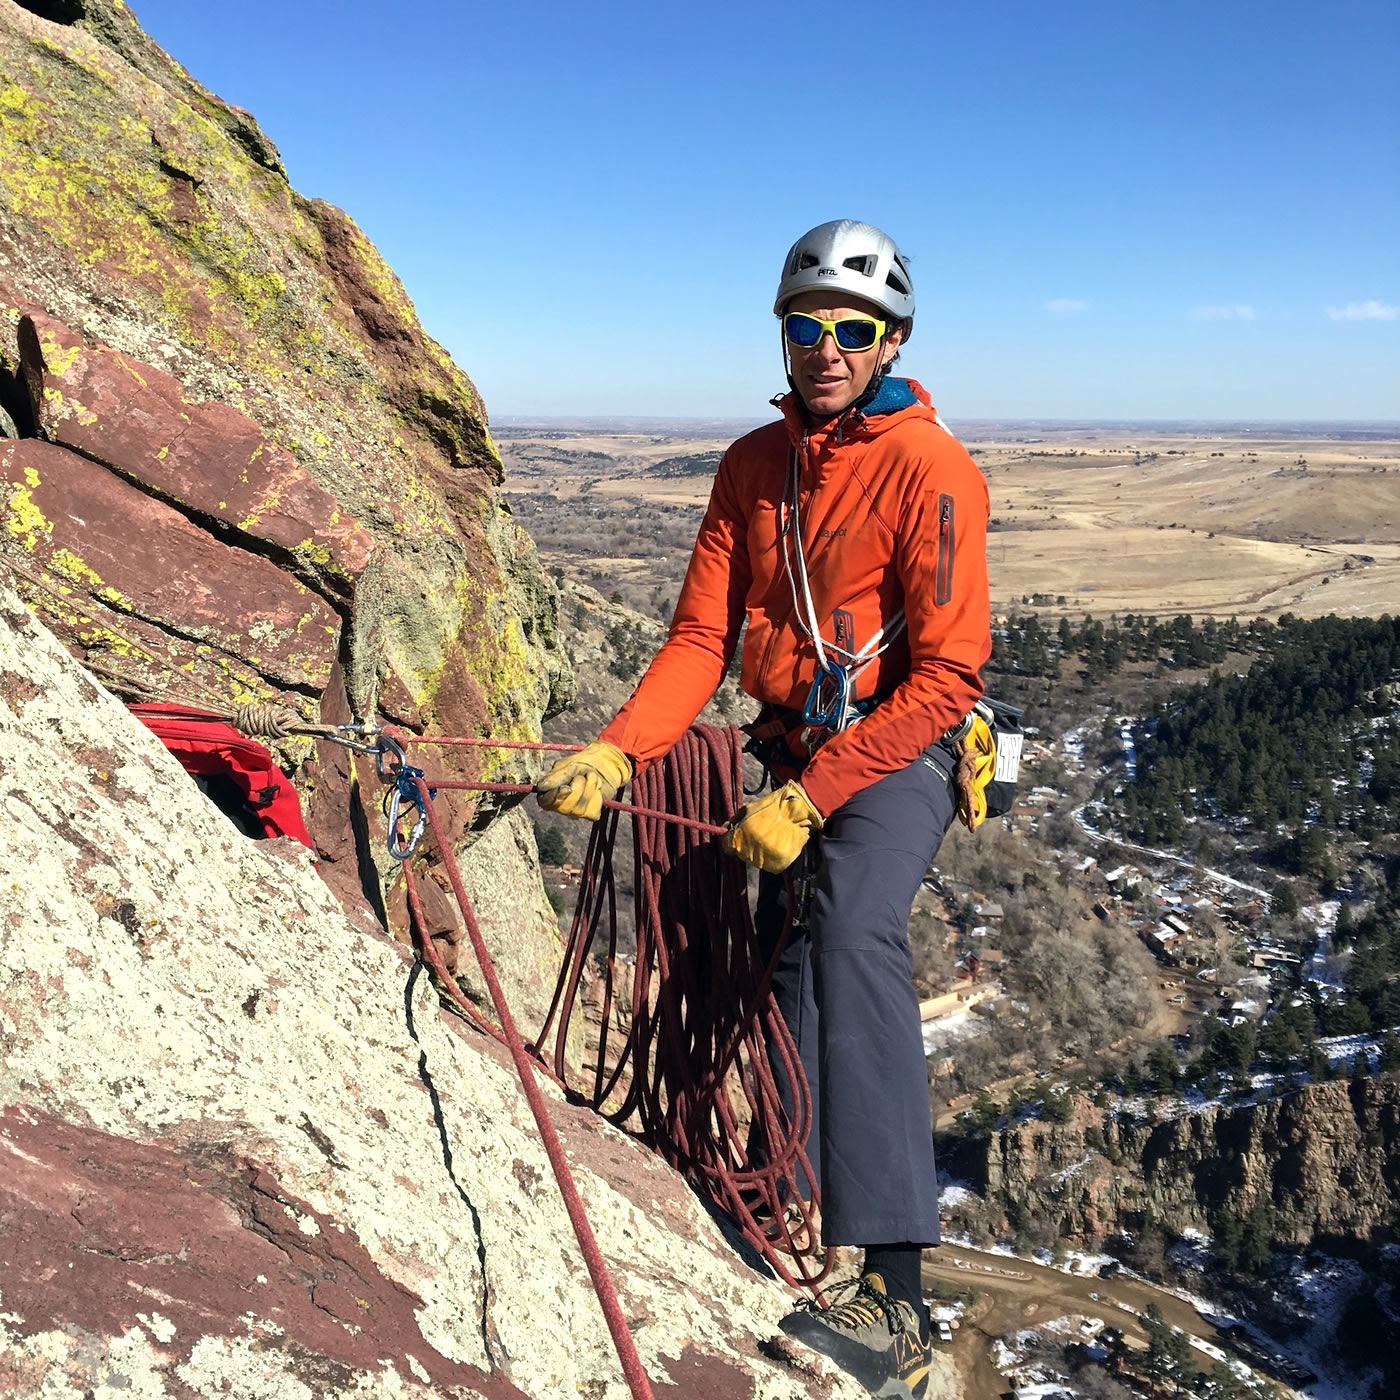 Mike Lewis guides Anthill Direct (5.9-) in Eldorado Canyon, Colorado, using the DMM Pivot belay device [Photo] Peter Braam